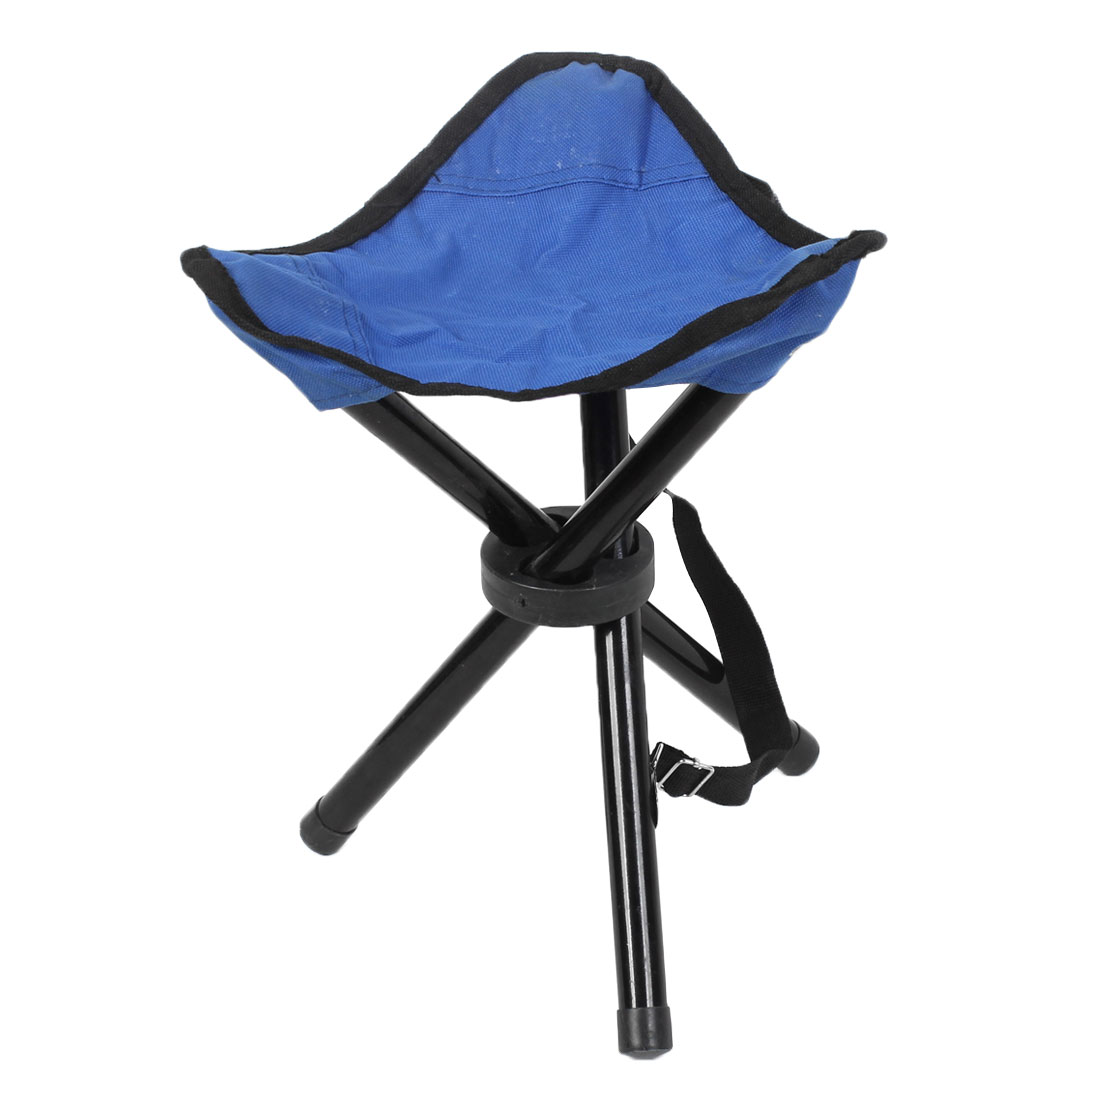 Outdoor Traveling Camping Fishing Folded Tripod Stool Chair Seat Blue